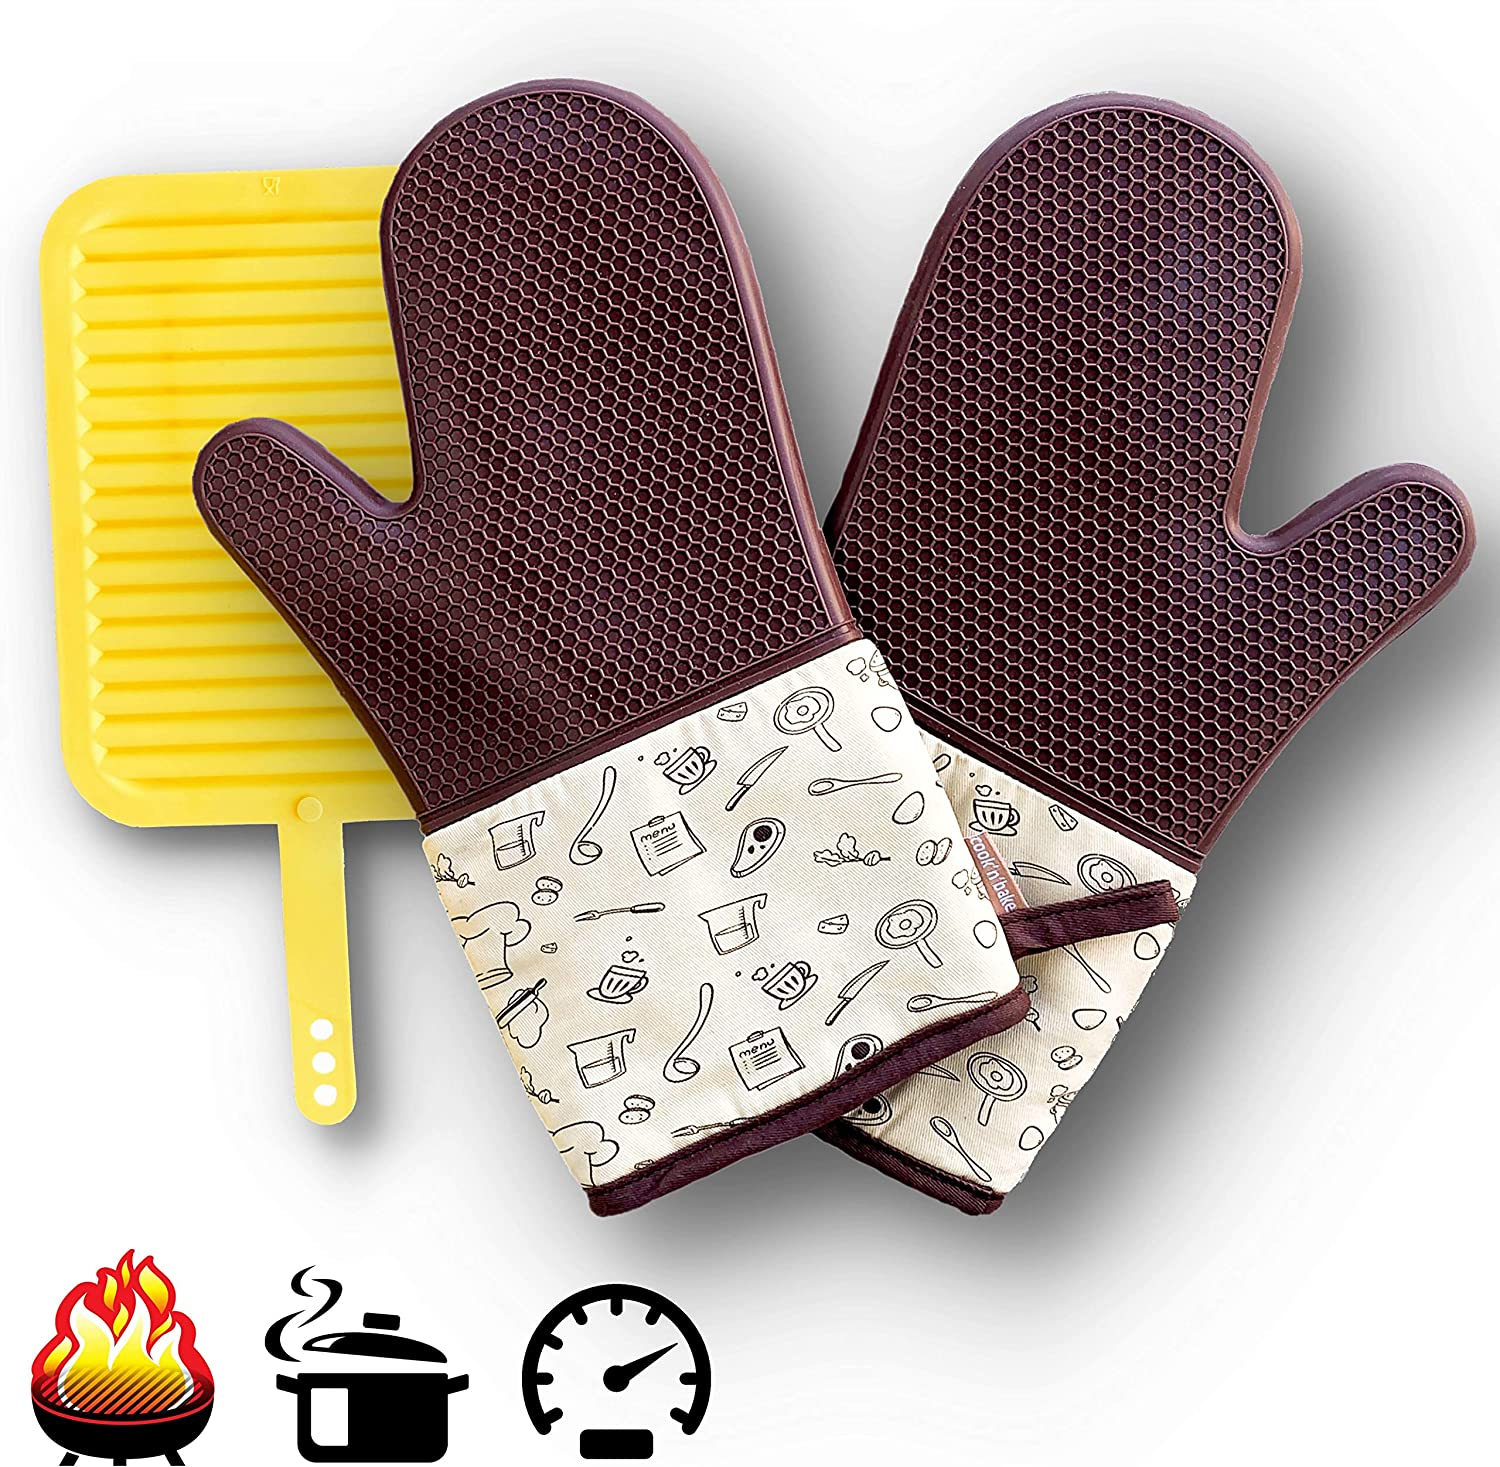 Pair of Silicone Oven Mitt Set with Silicone Mat, Brown and Beige Silicone Gloves for Kitchen Cooking, Baking and Outdoor BBQ Grill and Smoker, Mat for Hot Pad